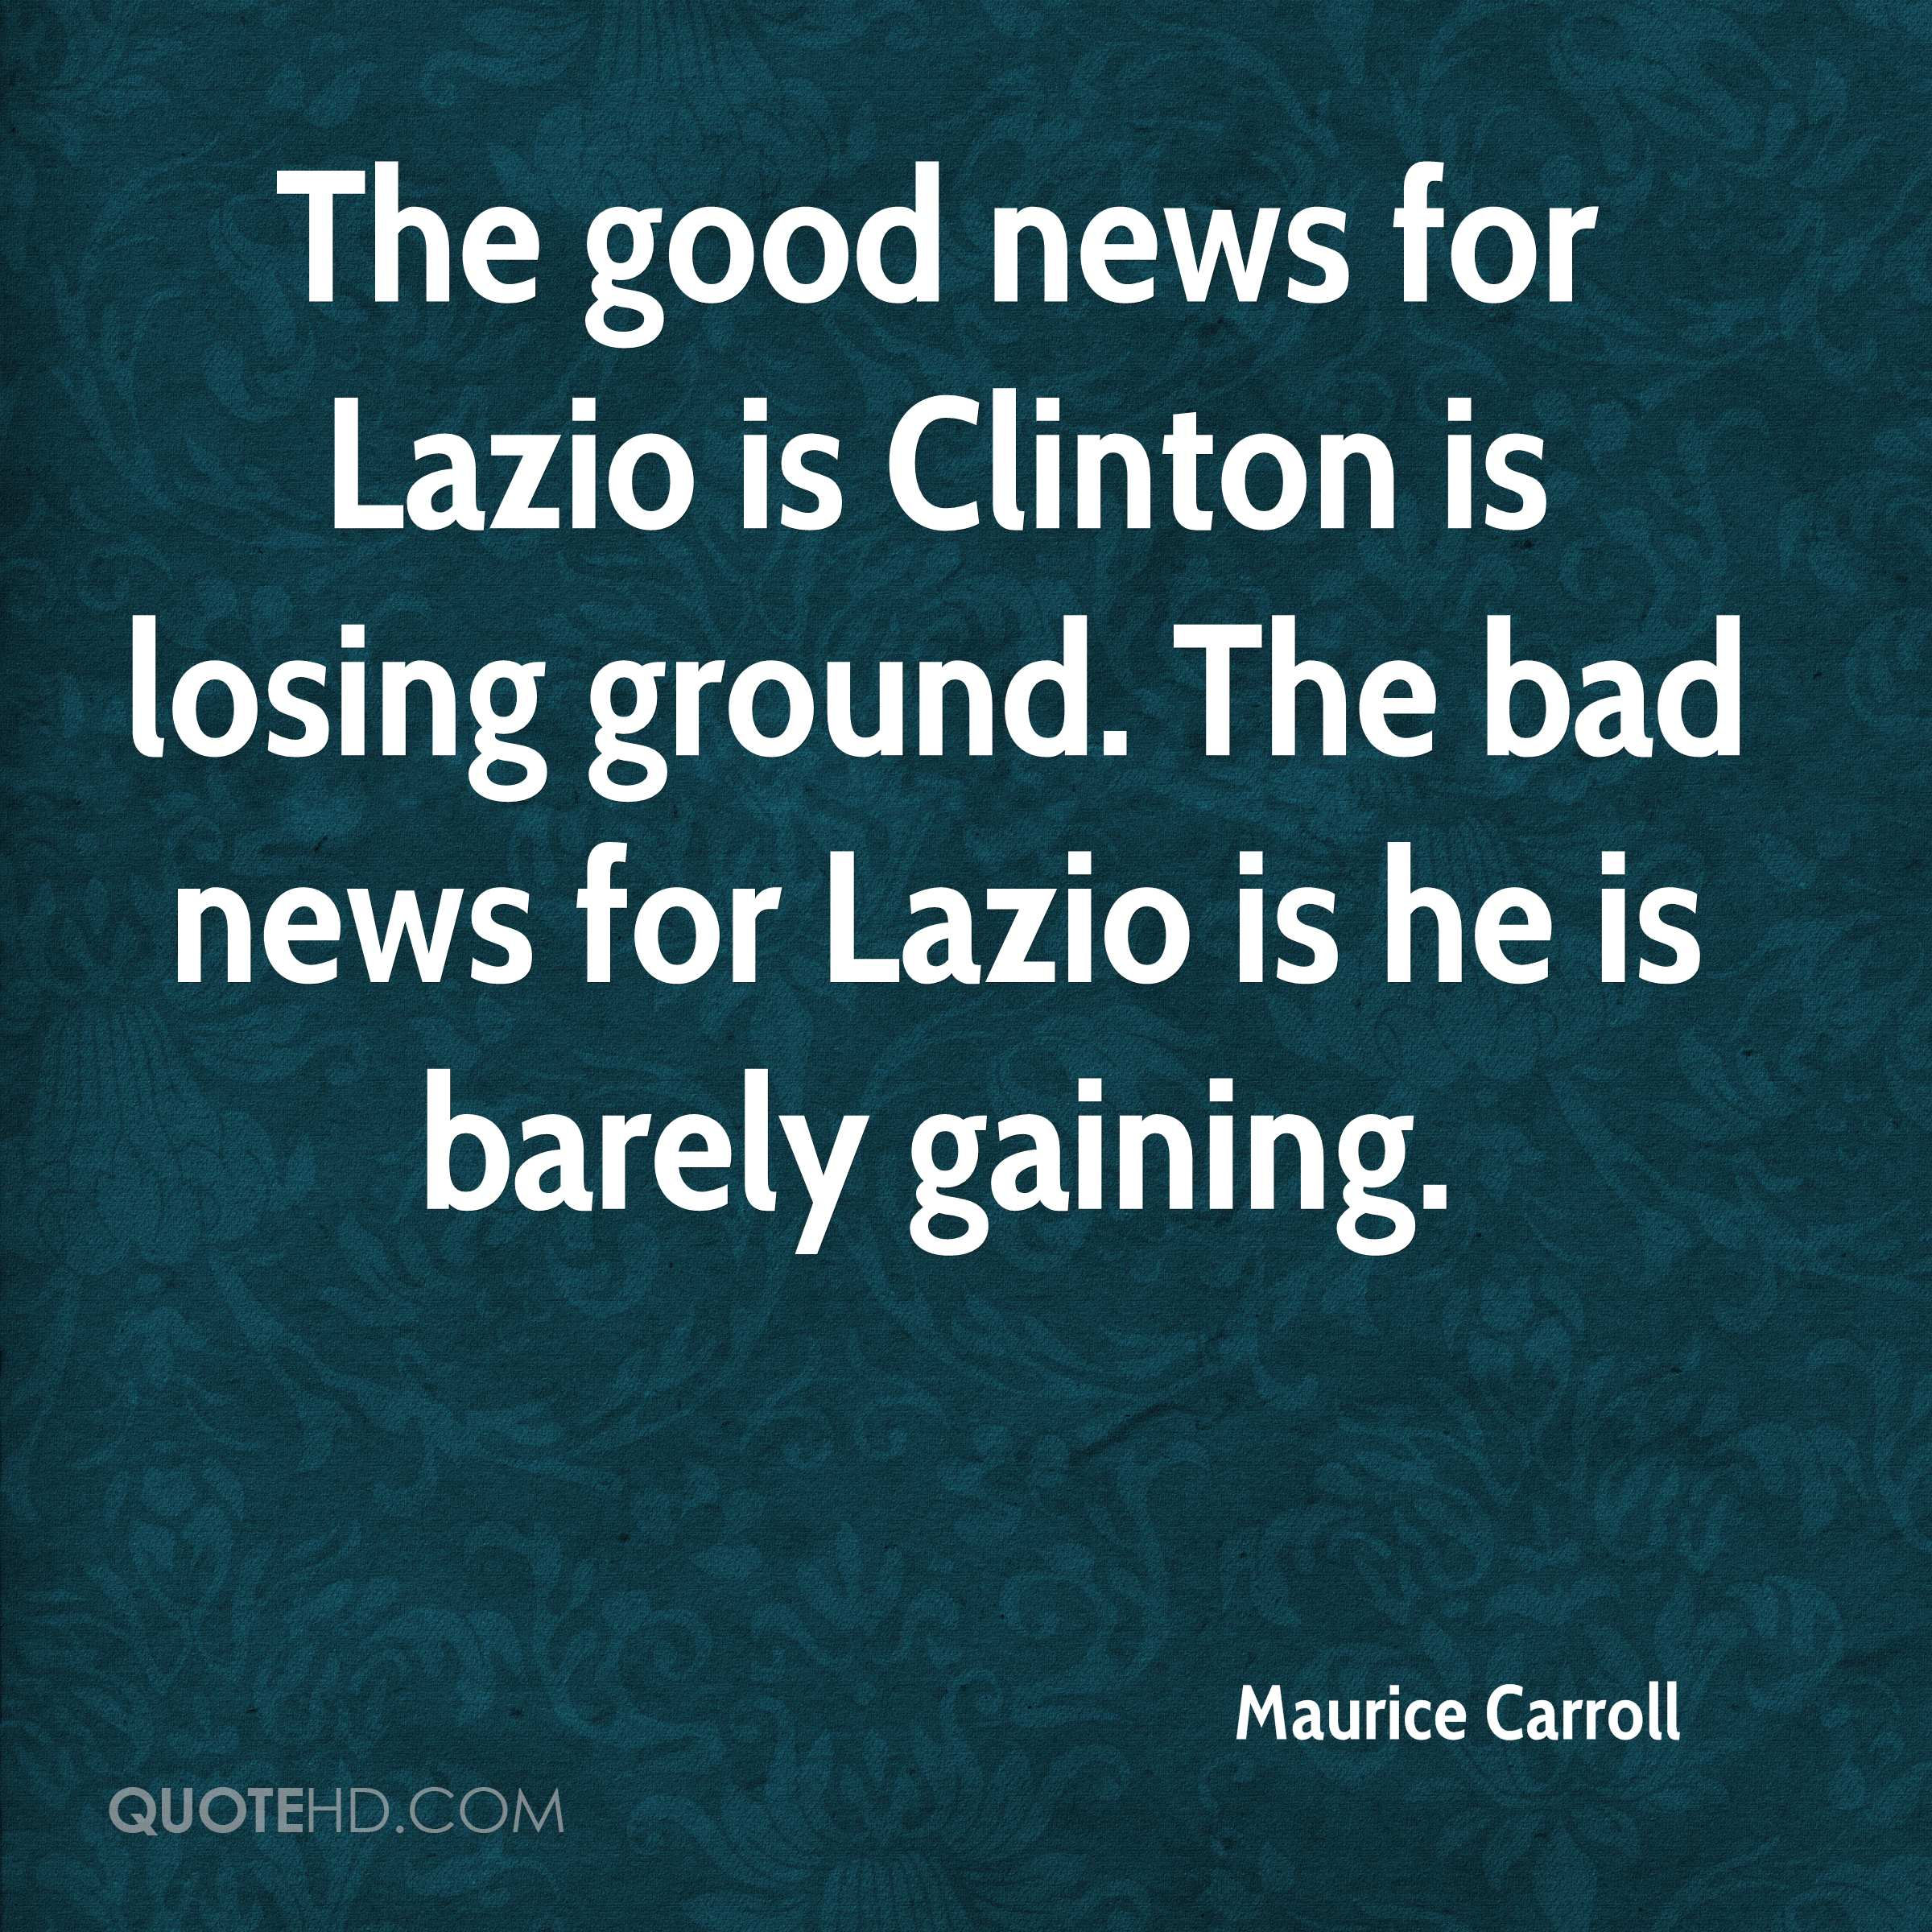 The good news for Lazio is Clinton is losing ground. The bad news for Lazio is he is barely gaining.